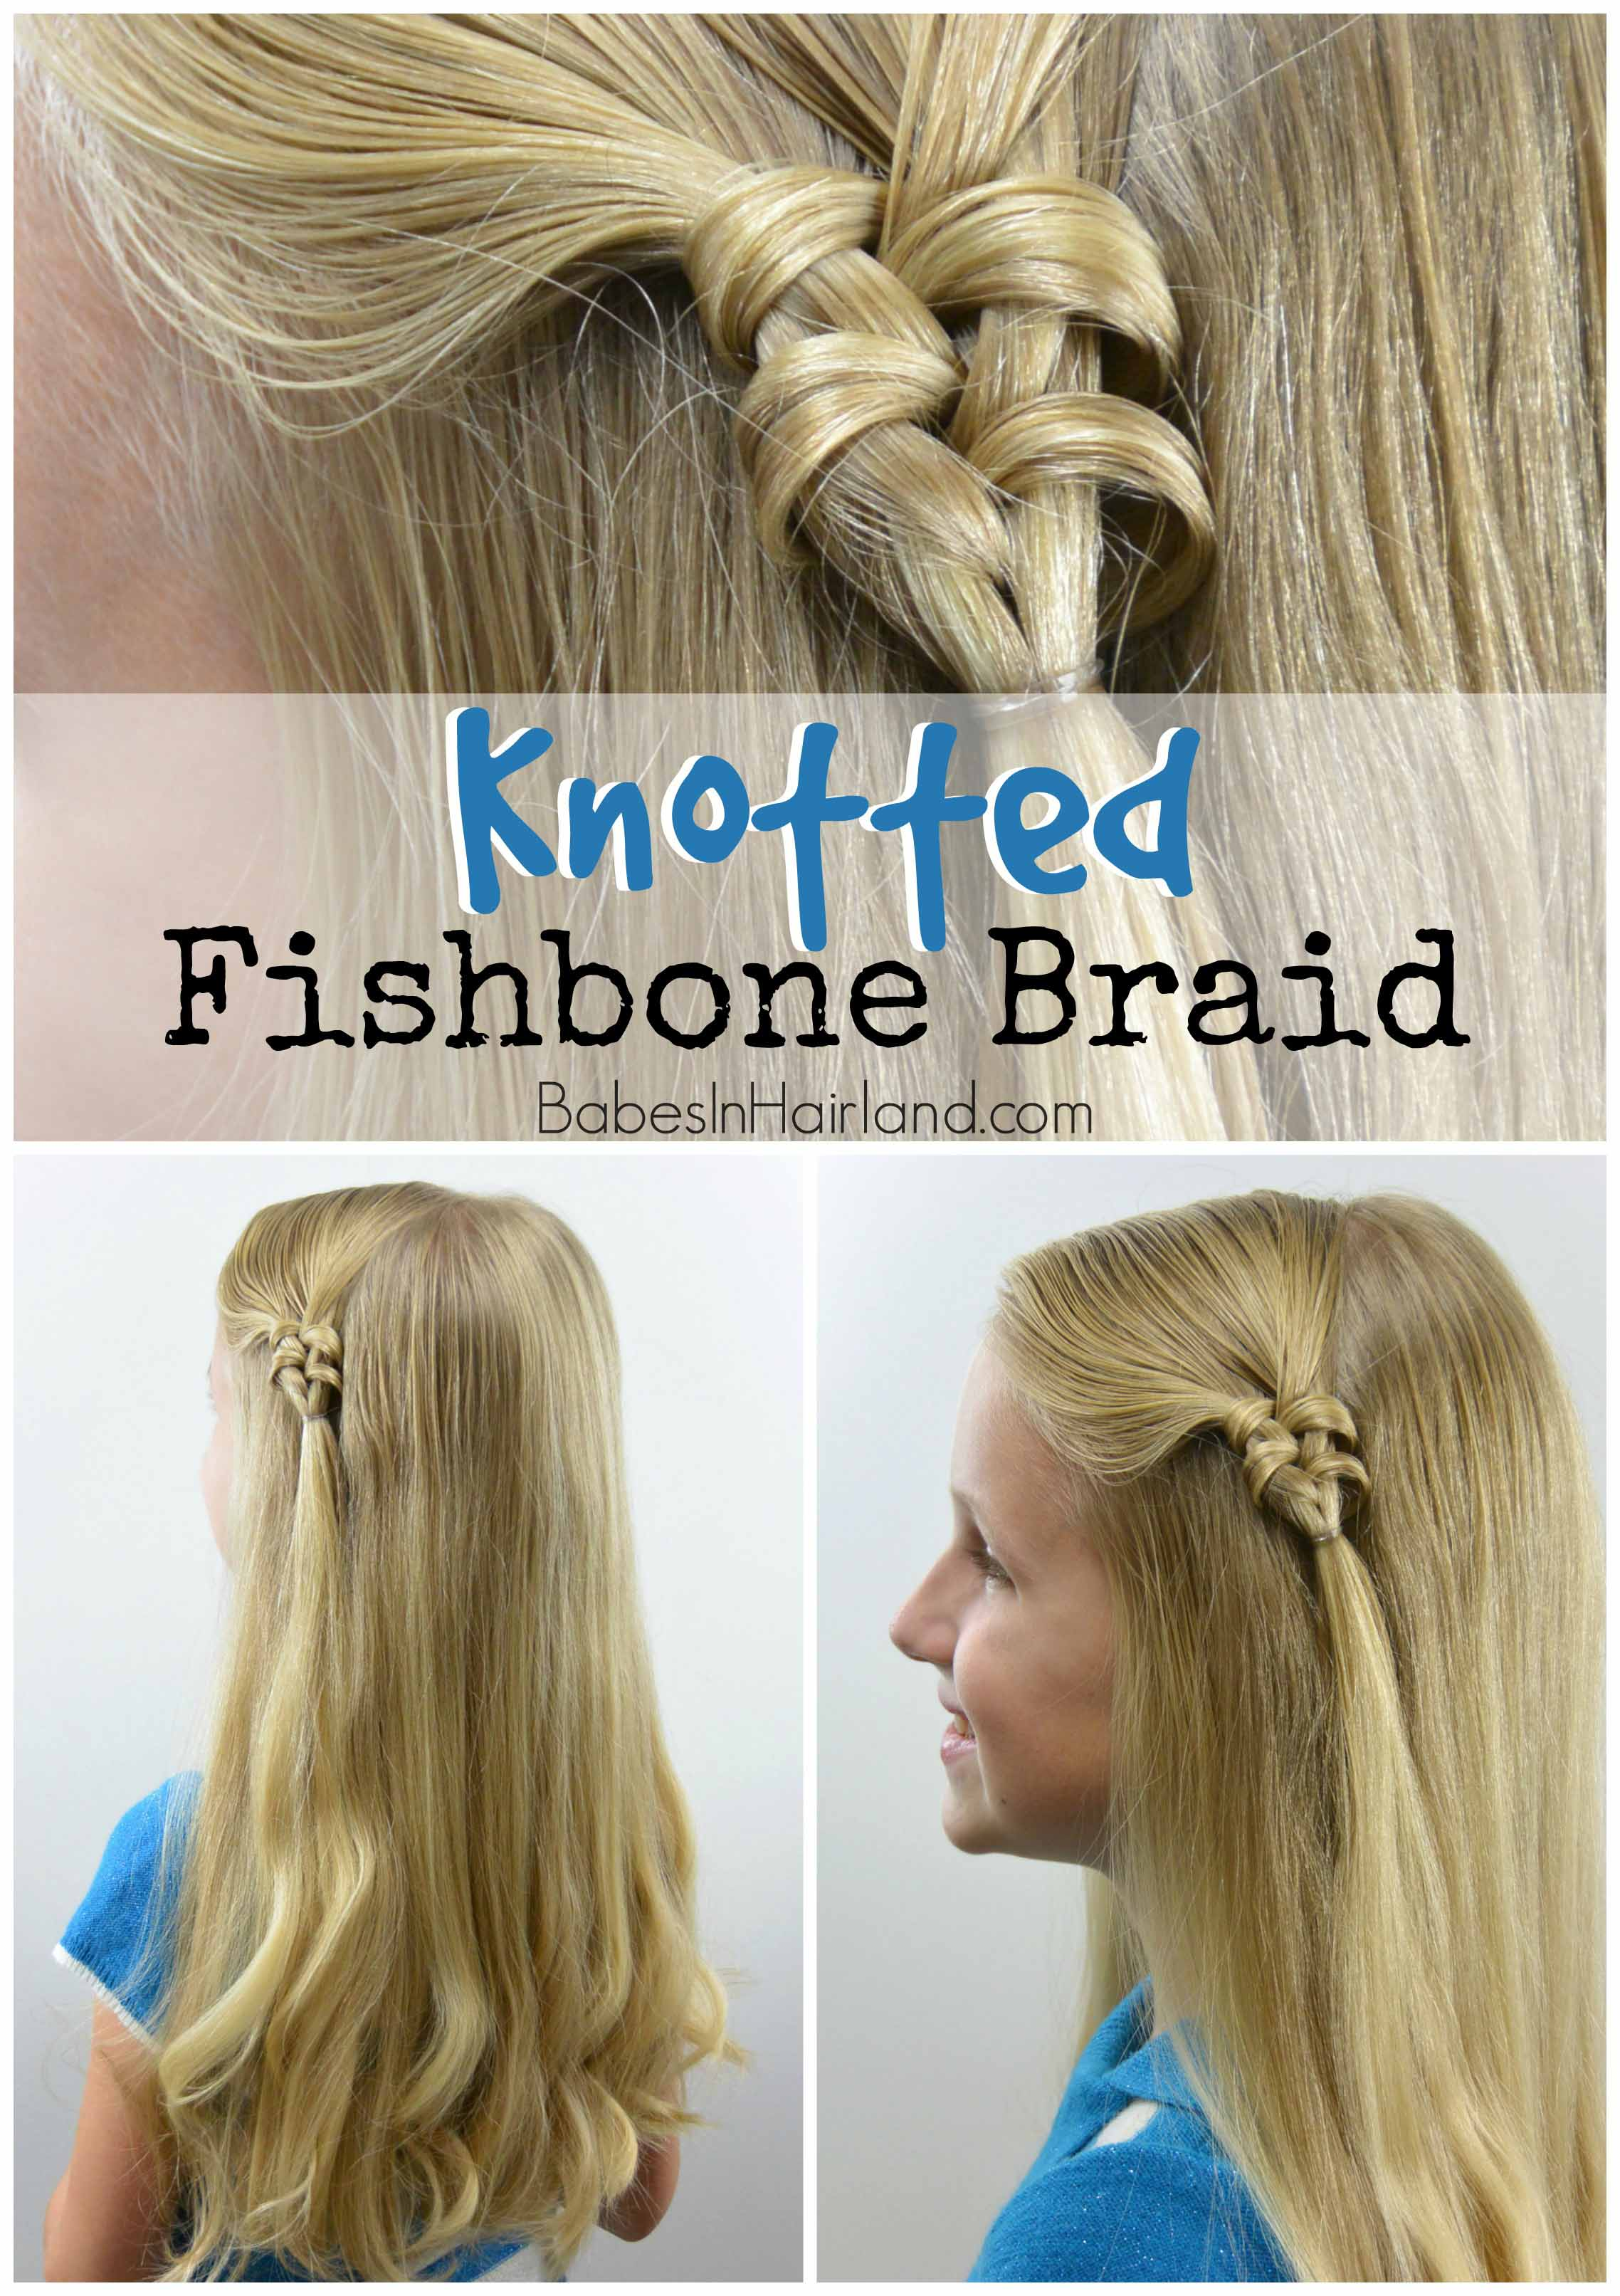 Surprising Knotted Fishbone Braid Babes In Hairland Hairstyles For Men Maxibearus